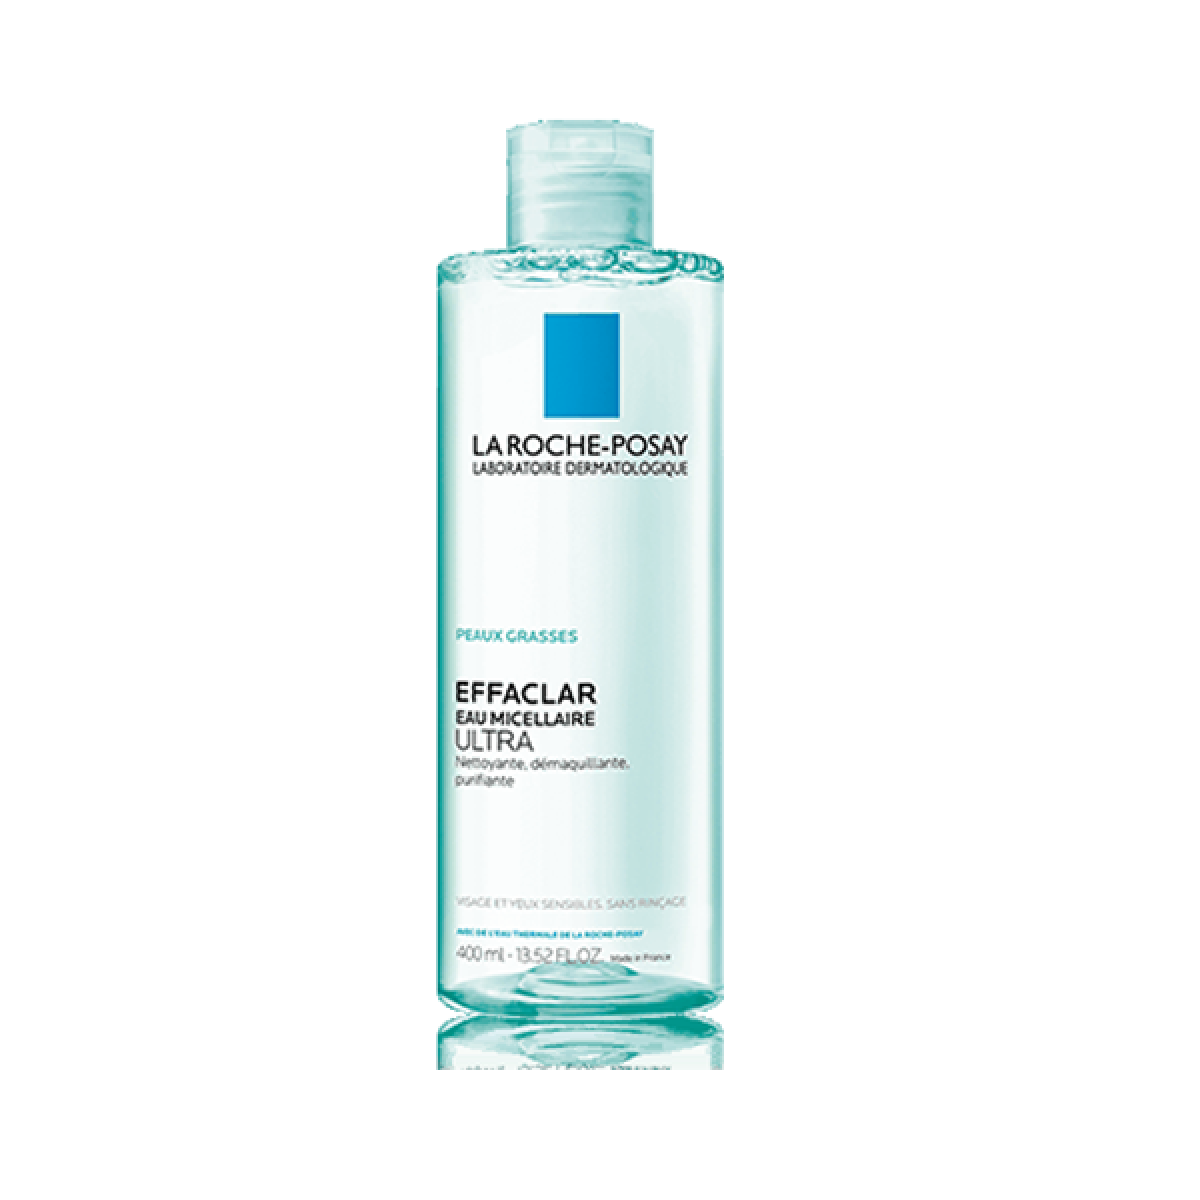 la roche posay effaclar eau micellaire purifiante 200ml parapharmacie pharmarket. Black Bedroom Furniture Sets. Home Design Ideas